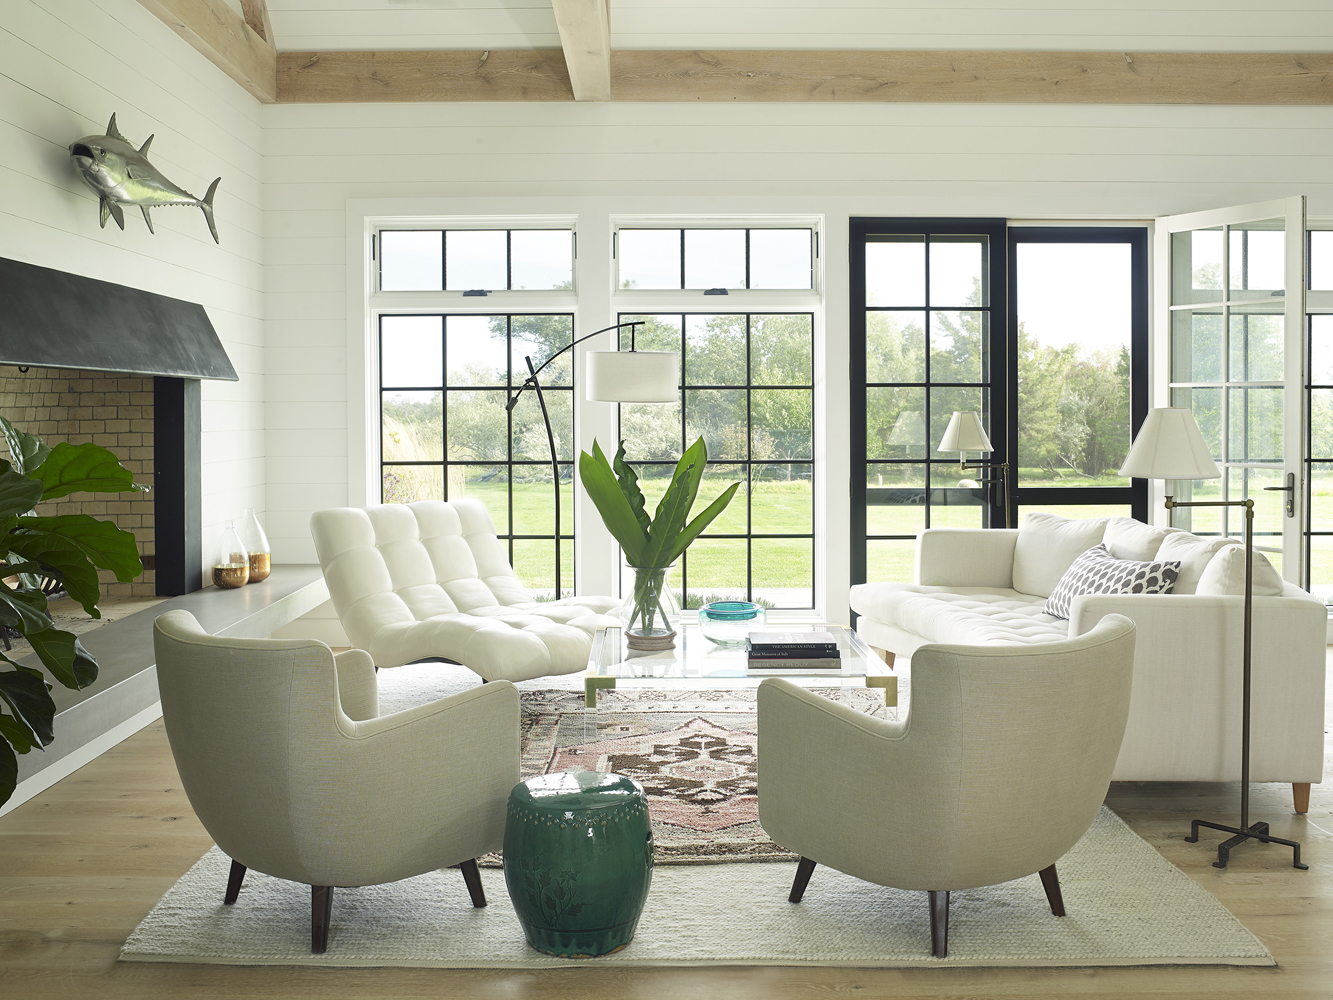 Living Room with Exposed Beams by Austin Patterson Disston Architects